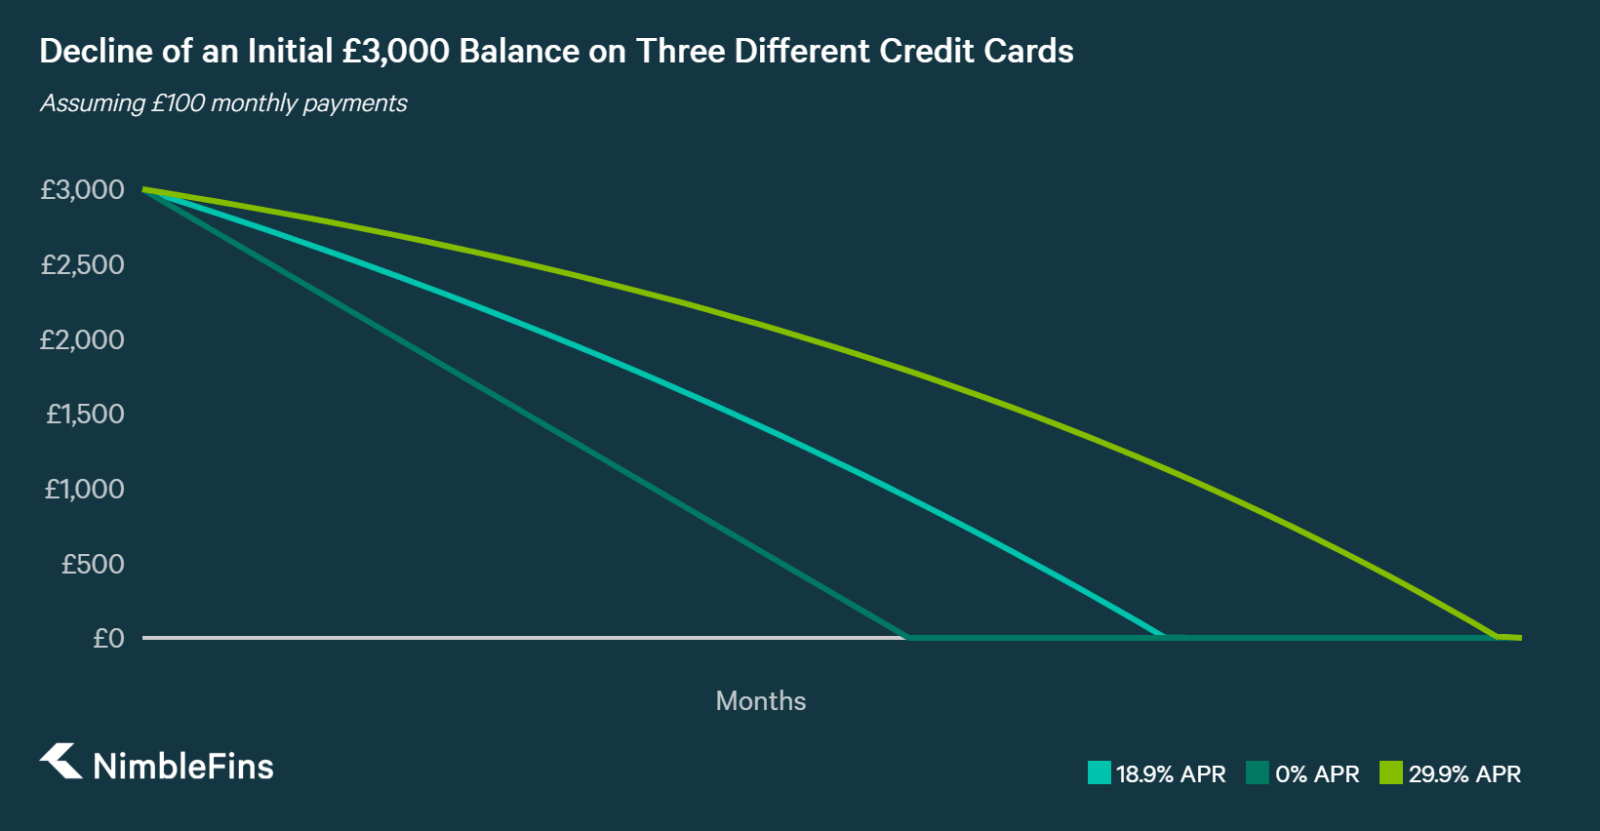 A graph showing Paying Down a £3,000 Balance on a three different cards, with interest rates of 0%, 18.9%, and 29.9%, through £100 monthly payments.